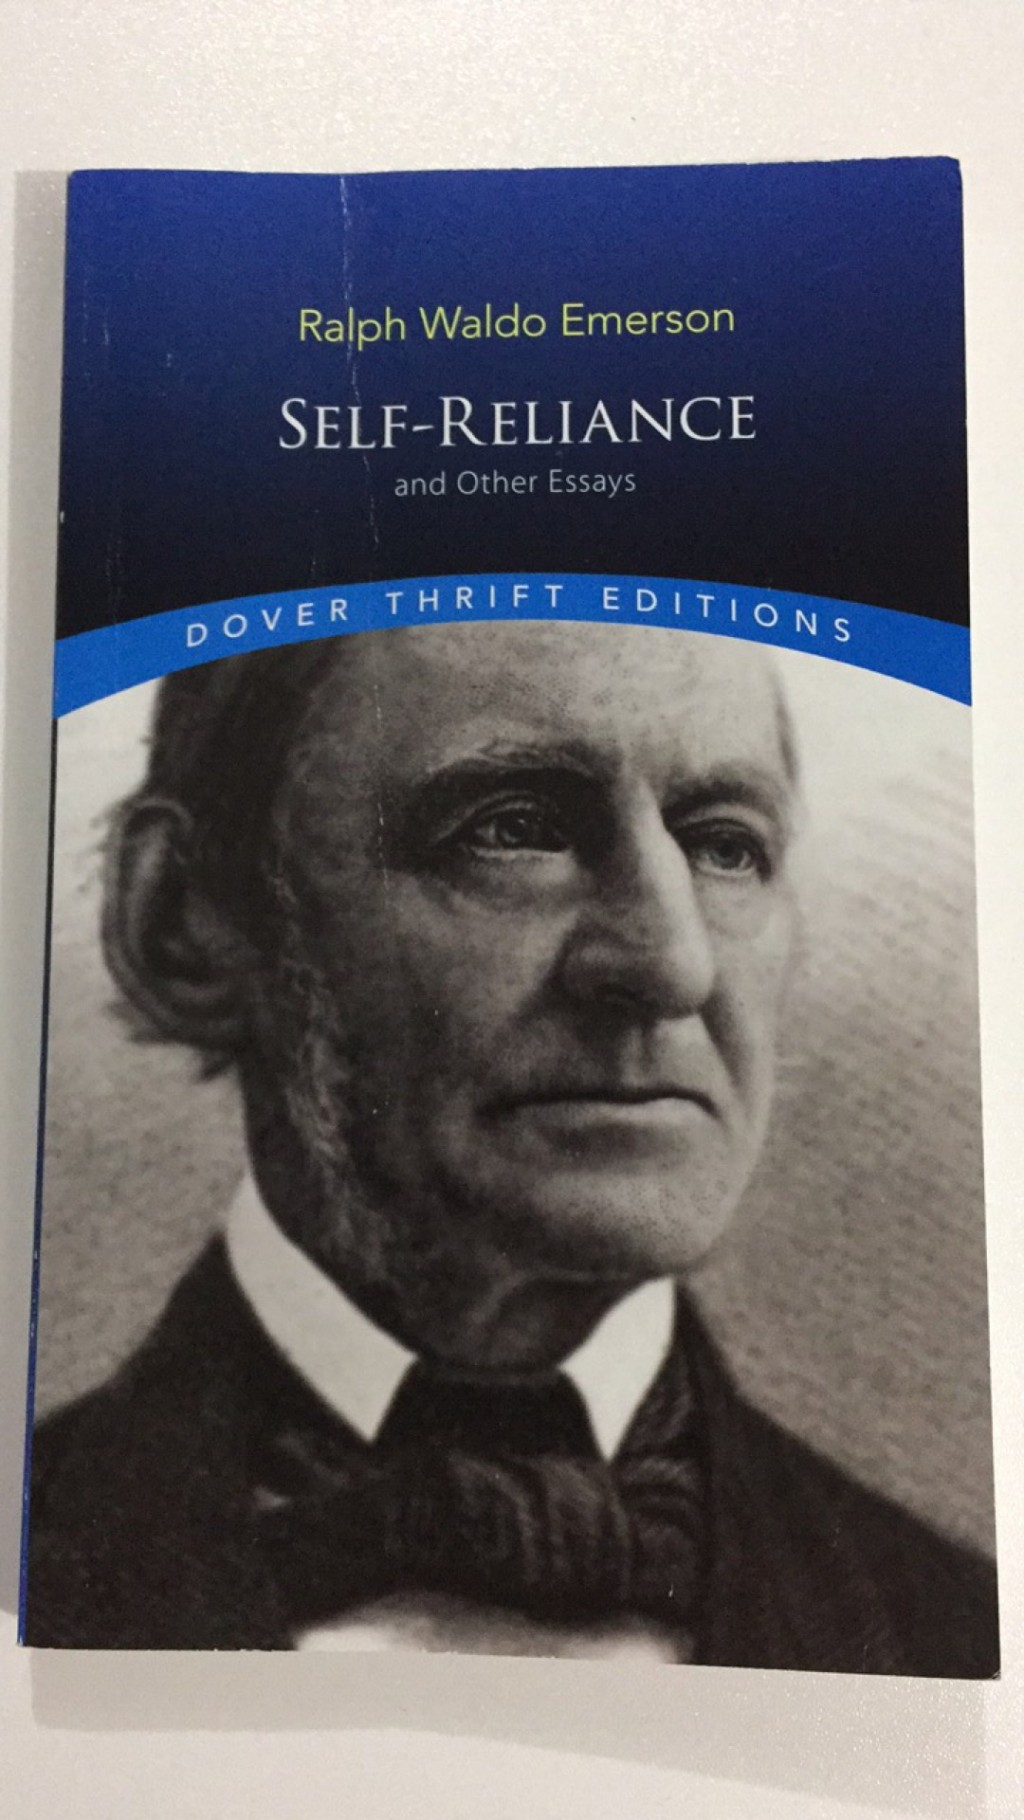 003 Self Reliance And Other Essays Essay Example By Ralph Waldo Emerson Formidable Ekşi Self-reliance (dover Thrift Editions) Pdf Epub Large